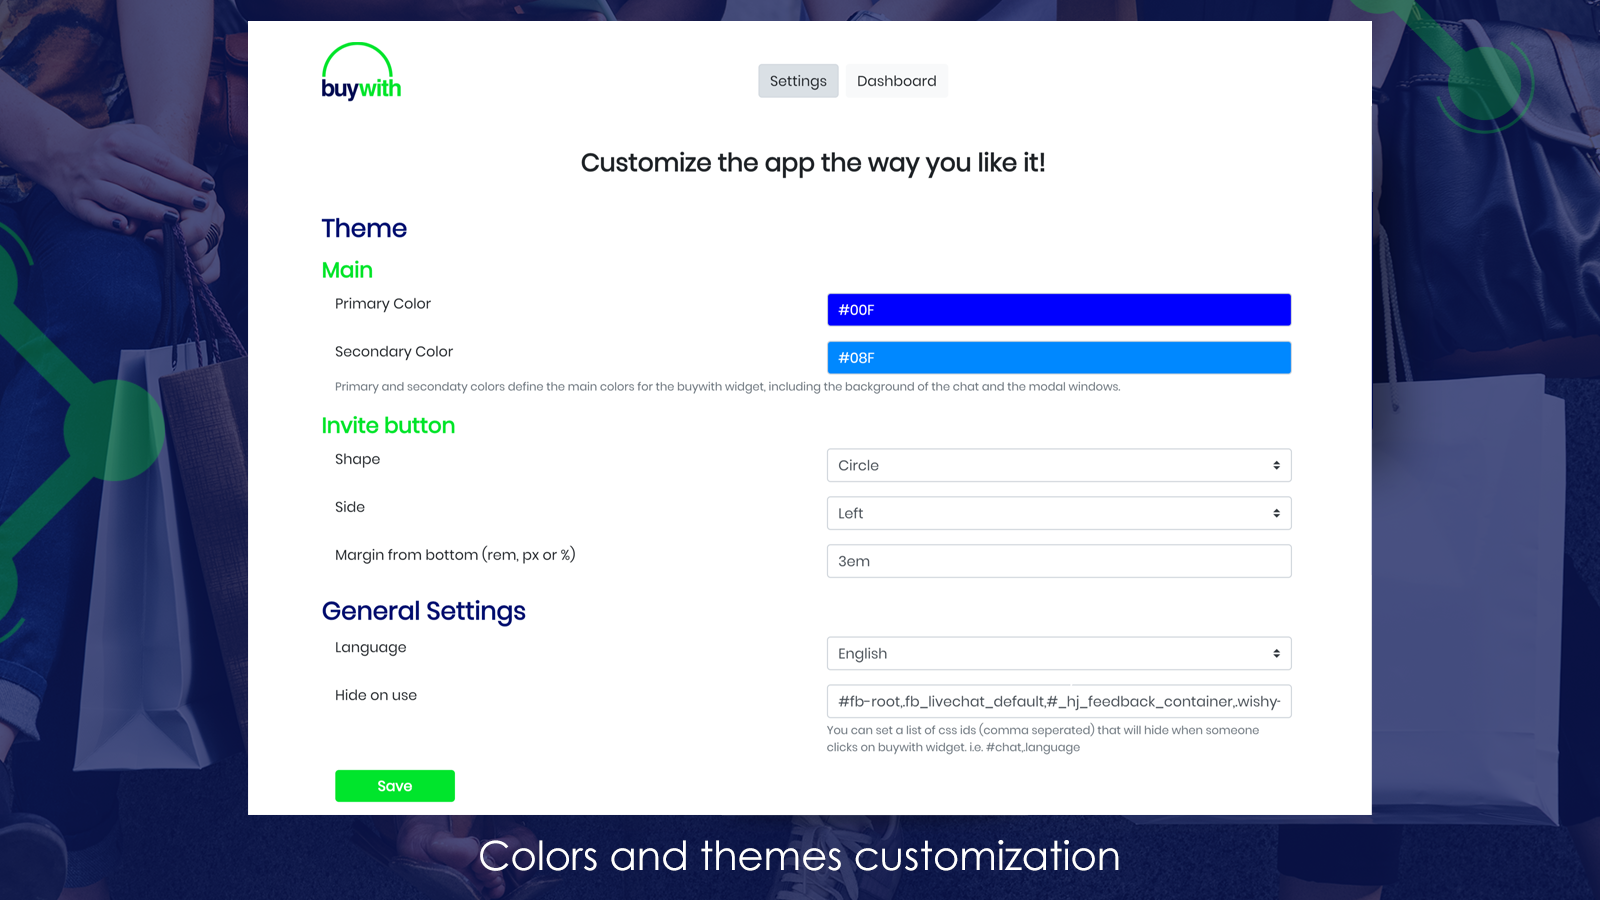 Colors and themes customization